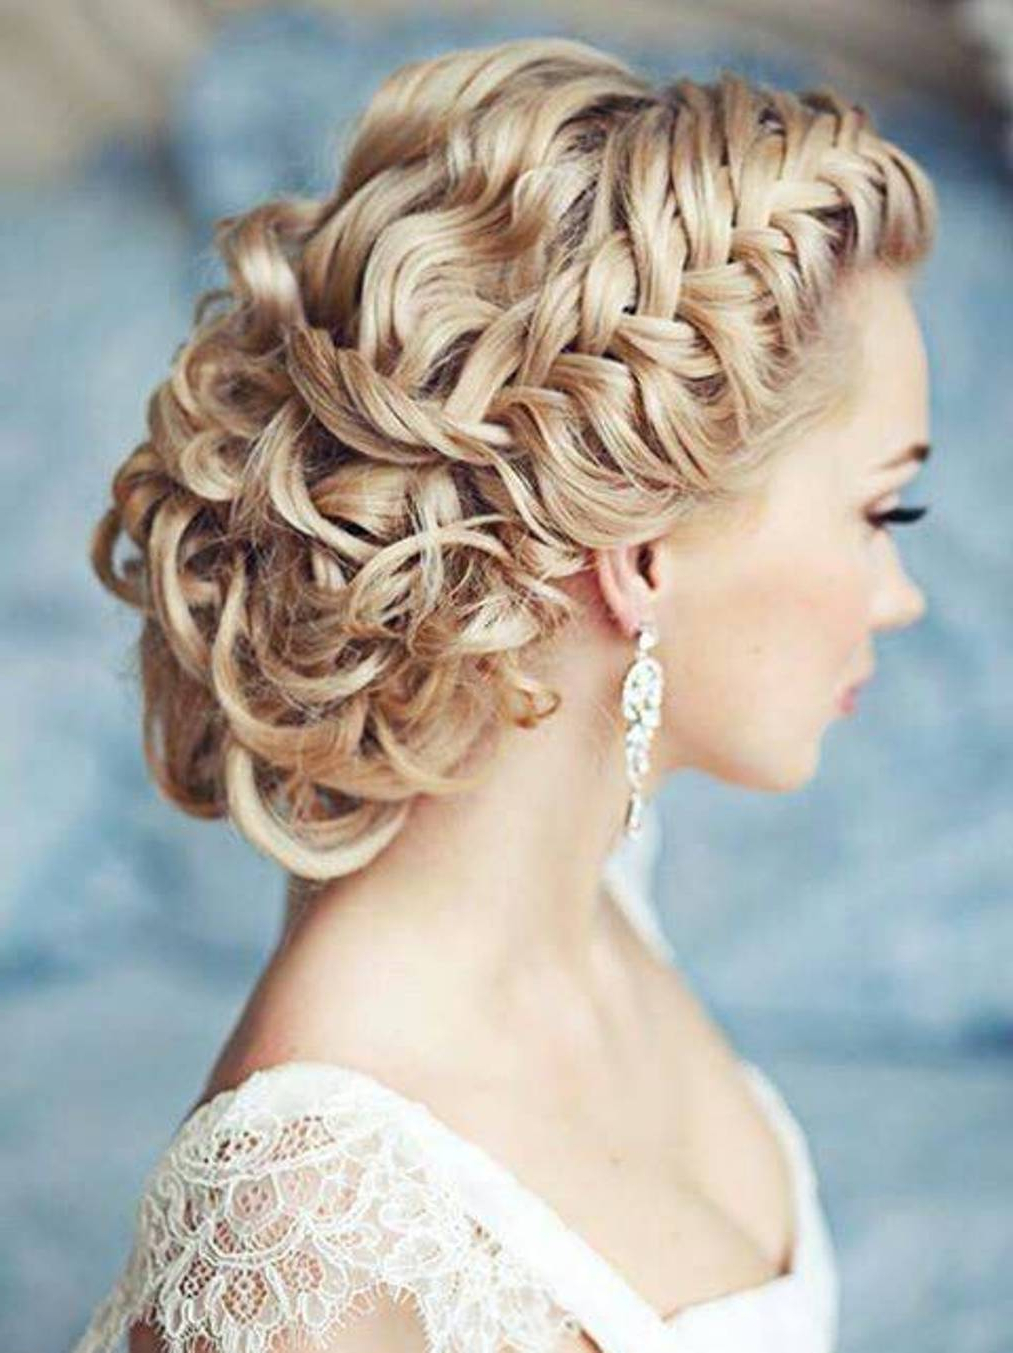 60+ Wedding & Bridal Hairstyle Ideas, Trends & Inspiration – The Xerxes With Favorite Embellished Caramel Blonde Chignon Bridal Hairstyles (View 7 of 20)